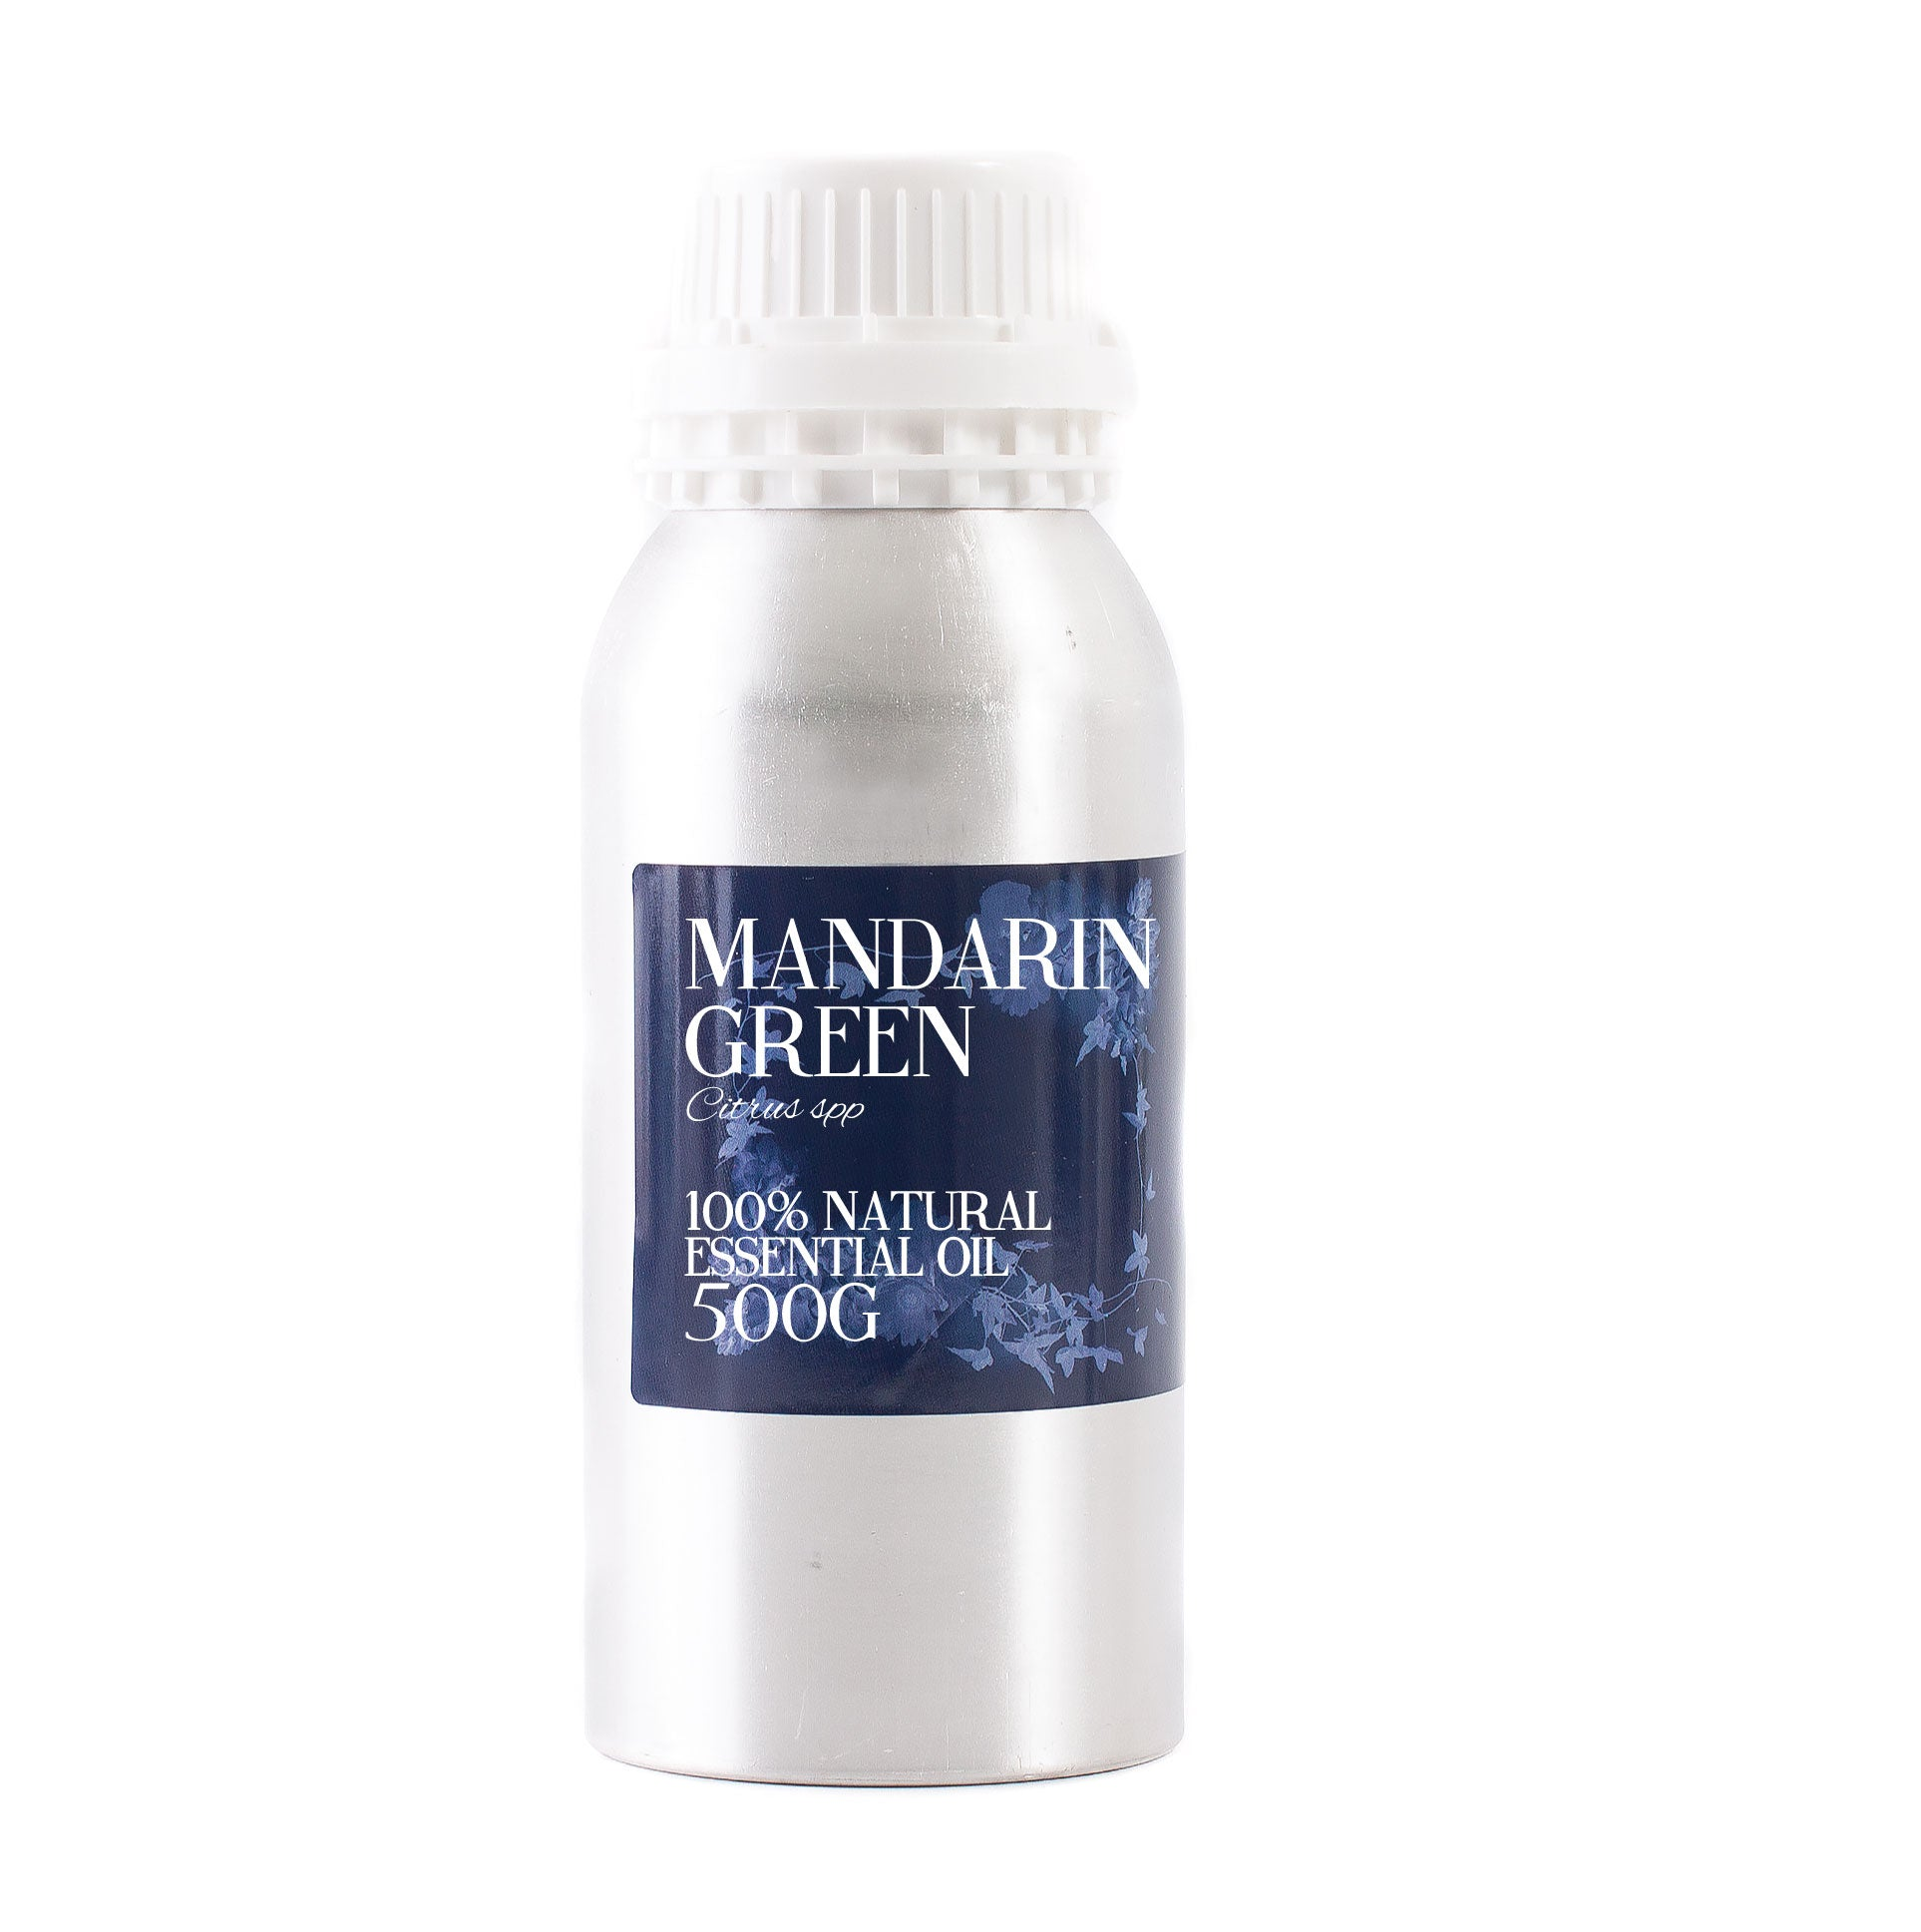 Mandarin Green Essential Oil